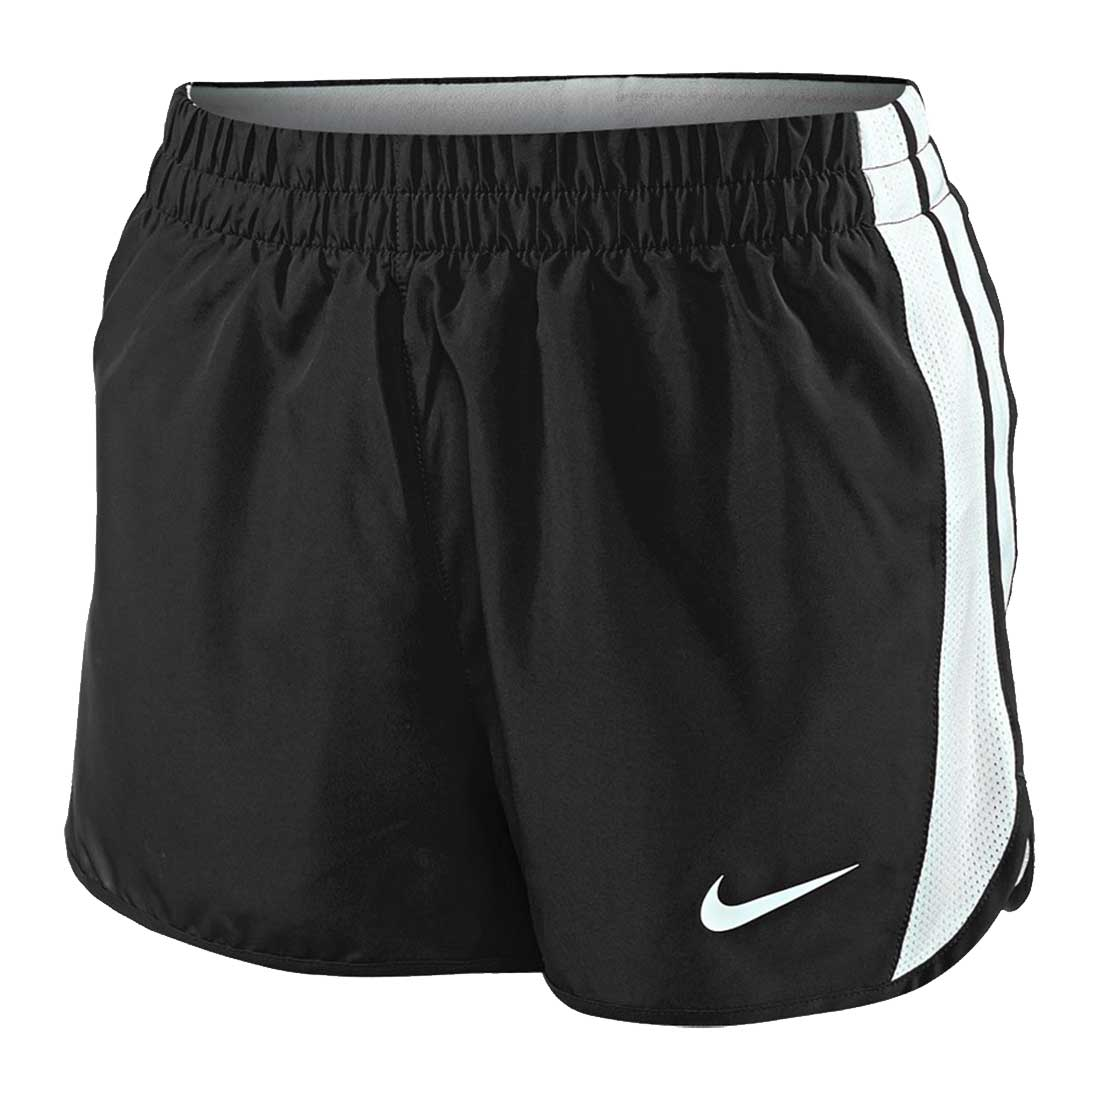 b1a5b5d3b66c7d Nike Ladies Anchor Shorts - longstreth.com